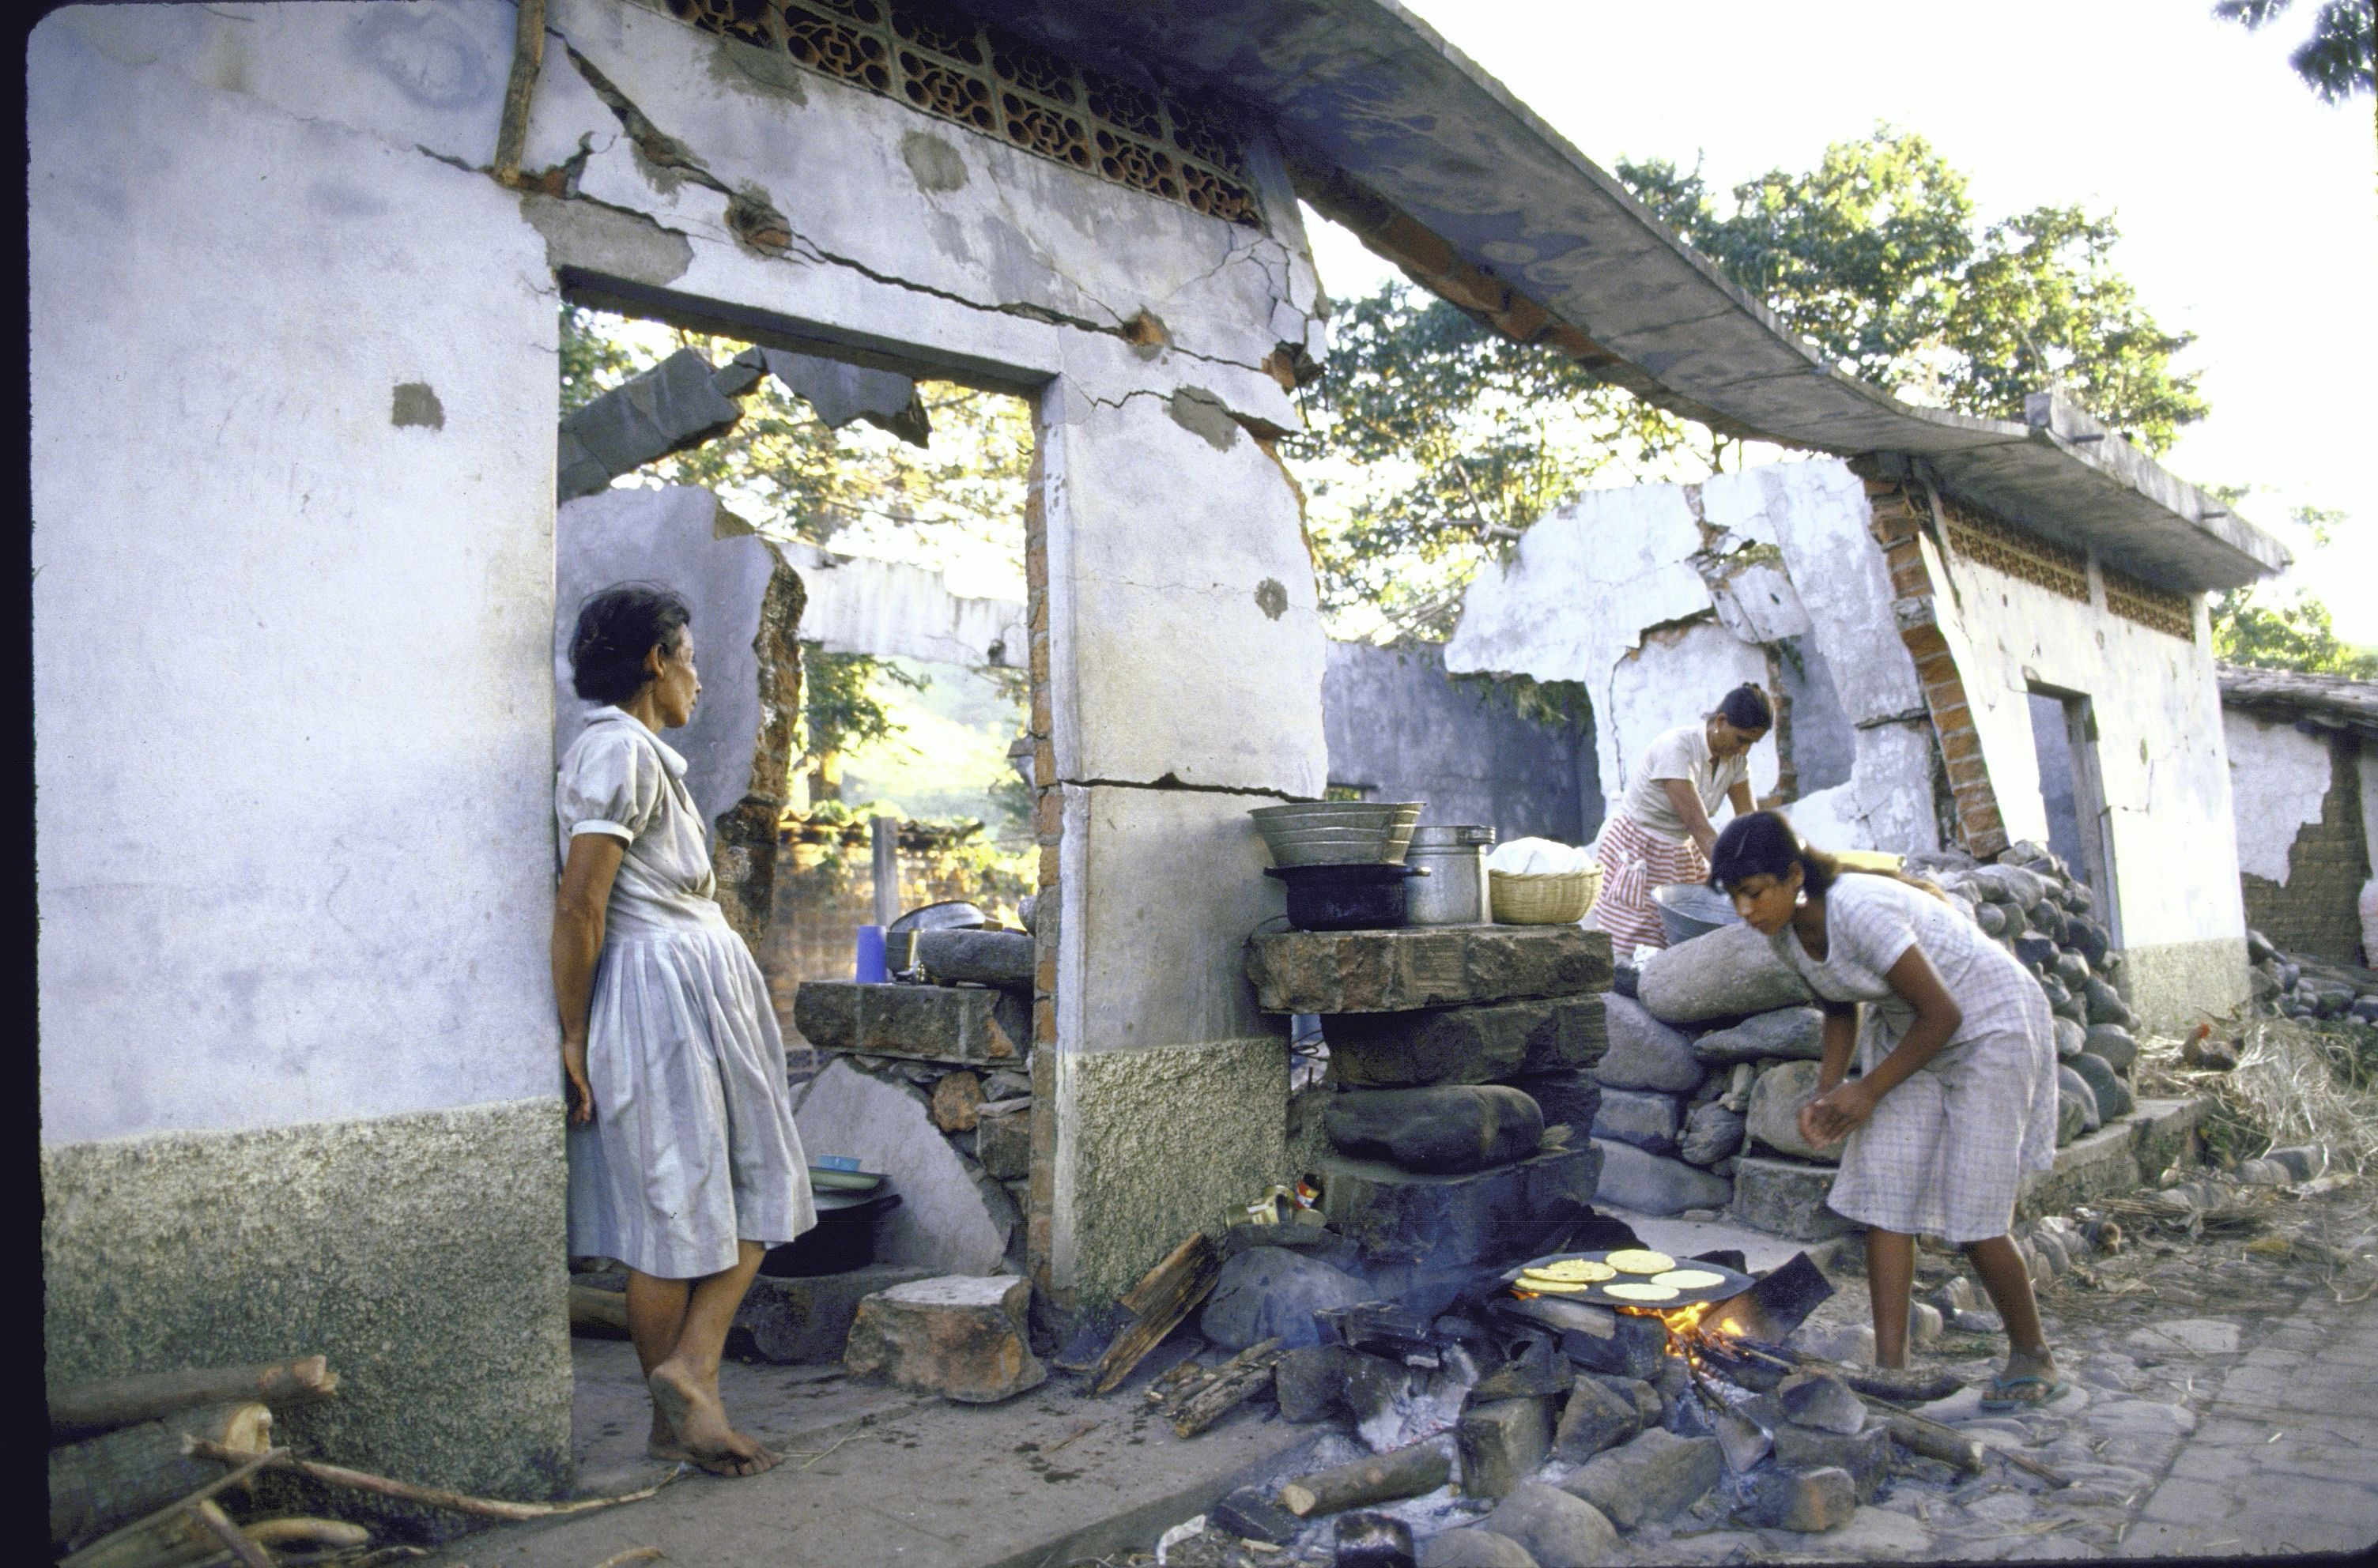 Women standing outside shell of their house; they have just returned to their village after 7 years in Honduran refugee camp.  (Photo by Cindy Karp/The LIFE Images Collection/Getty Images)